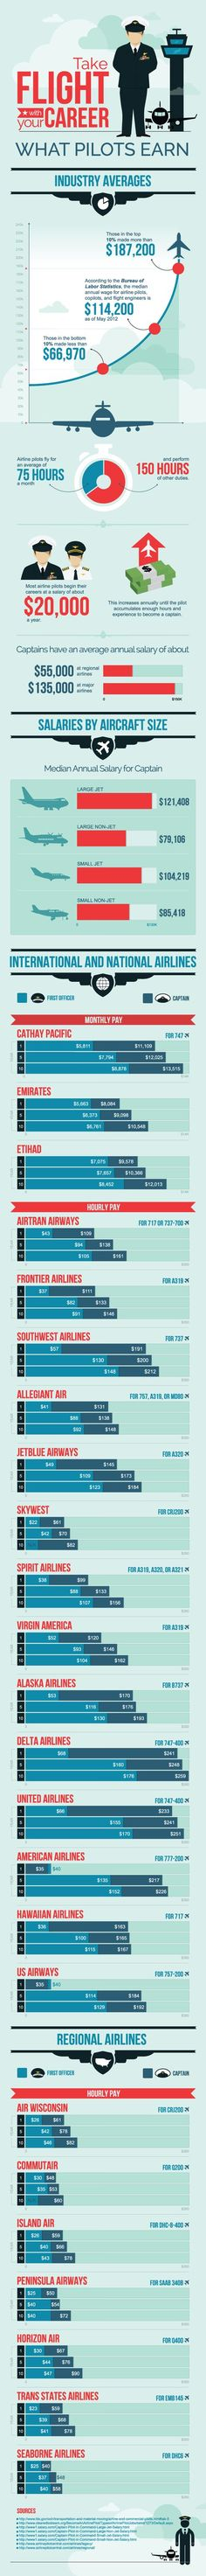 Airline pilot salaries vary greatly from the first year as a first officer to the 10th year as a pilot. So if you are considering a career as a pilot here are some pilot salary information.